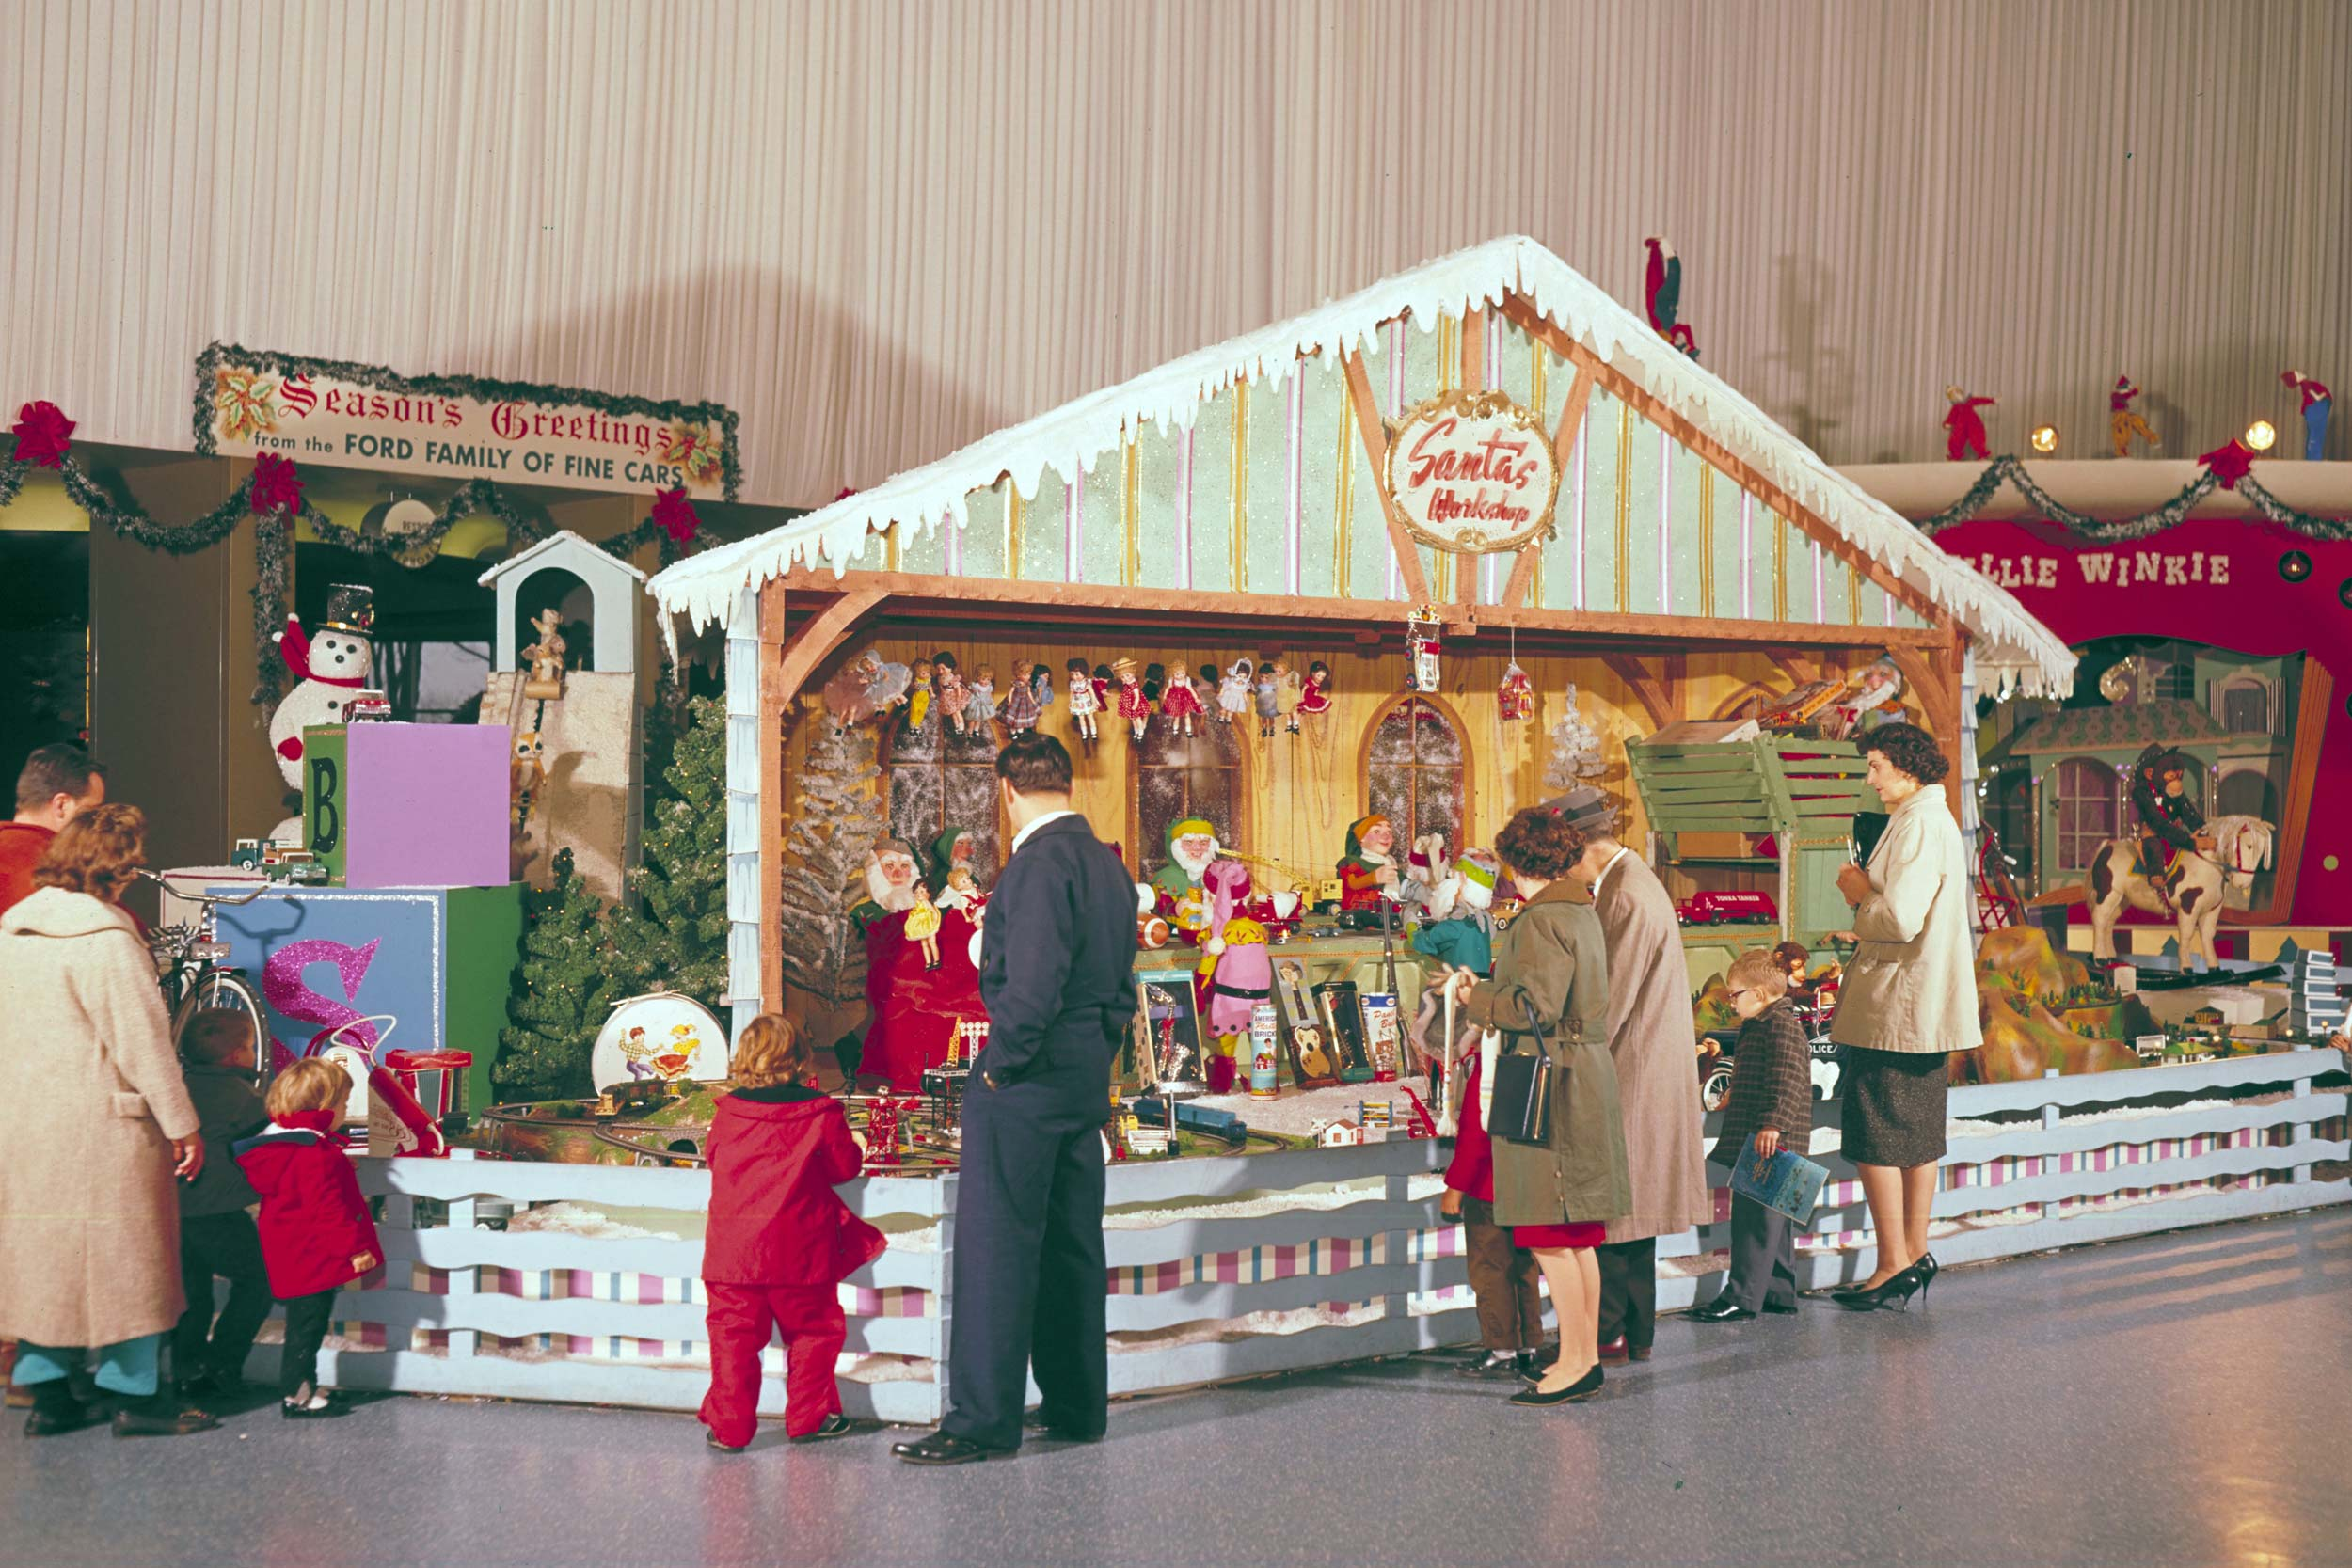 1960 Ford Rotunda Christmas exhibit Santa's Workshop